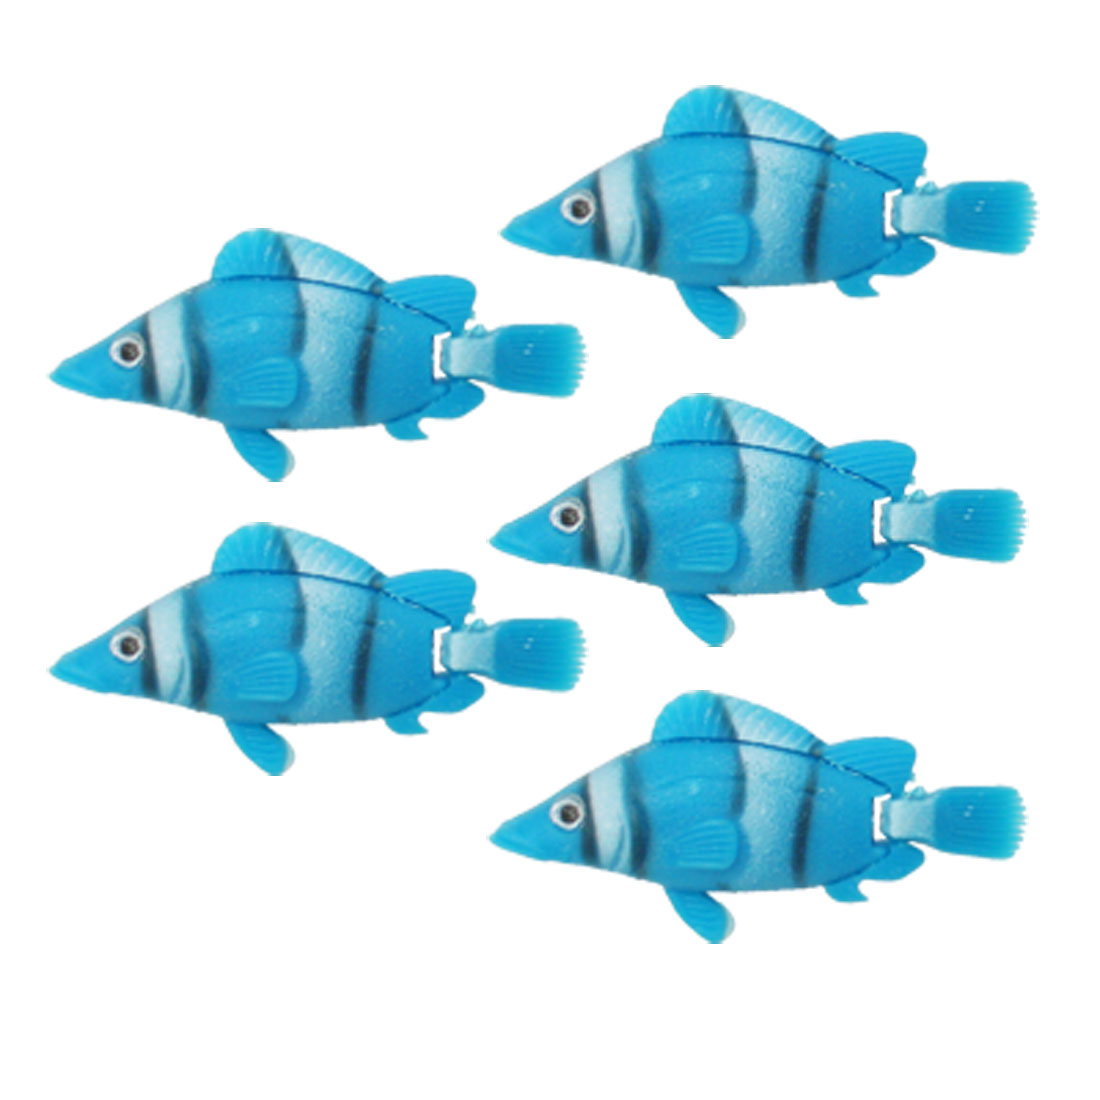 5pcs Aquarium Tank Plastic Floating Fish Ornament